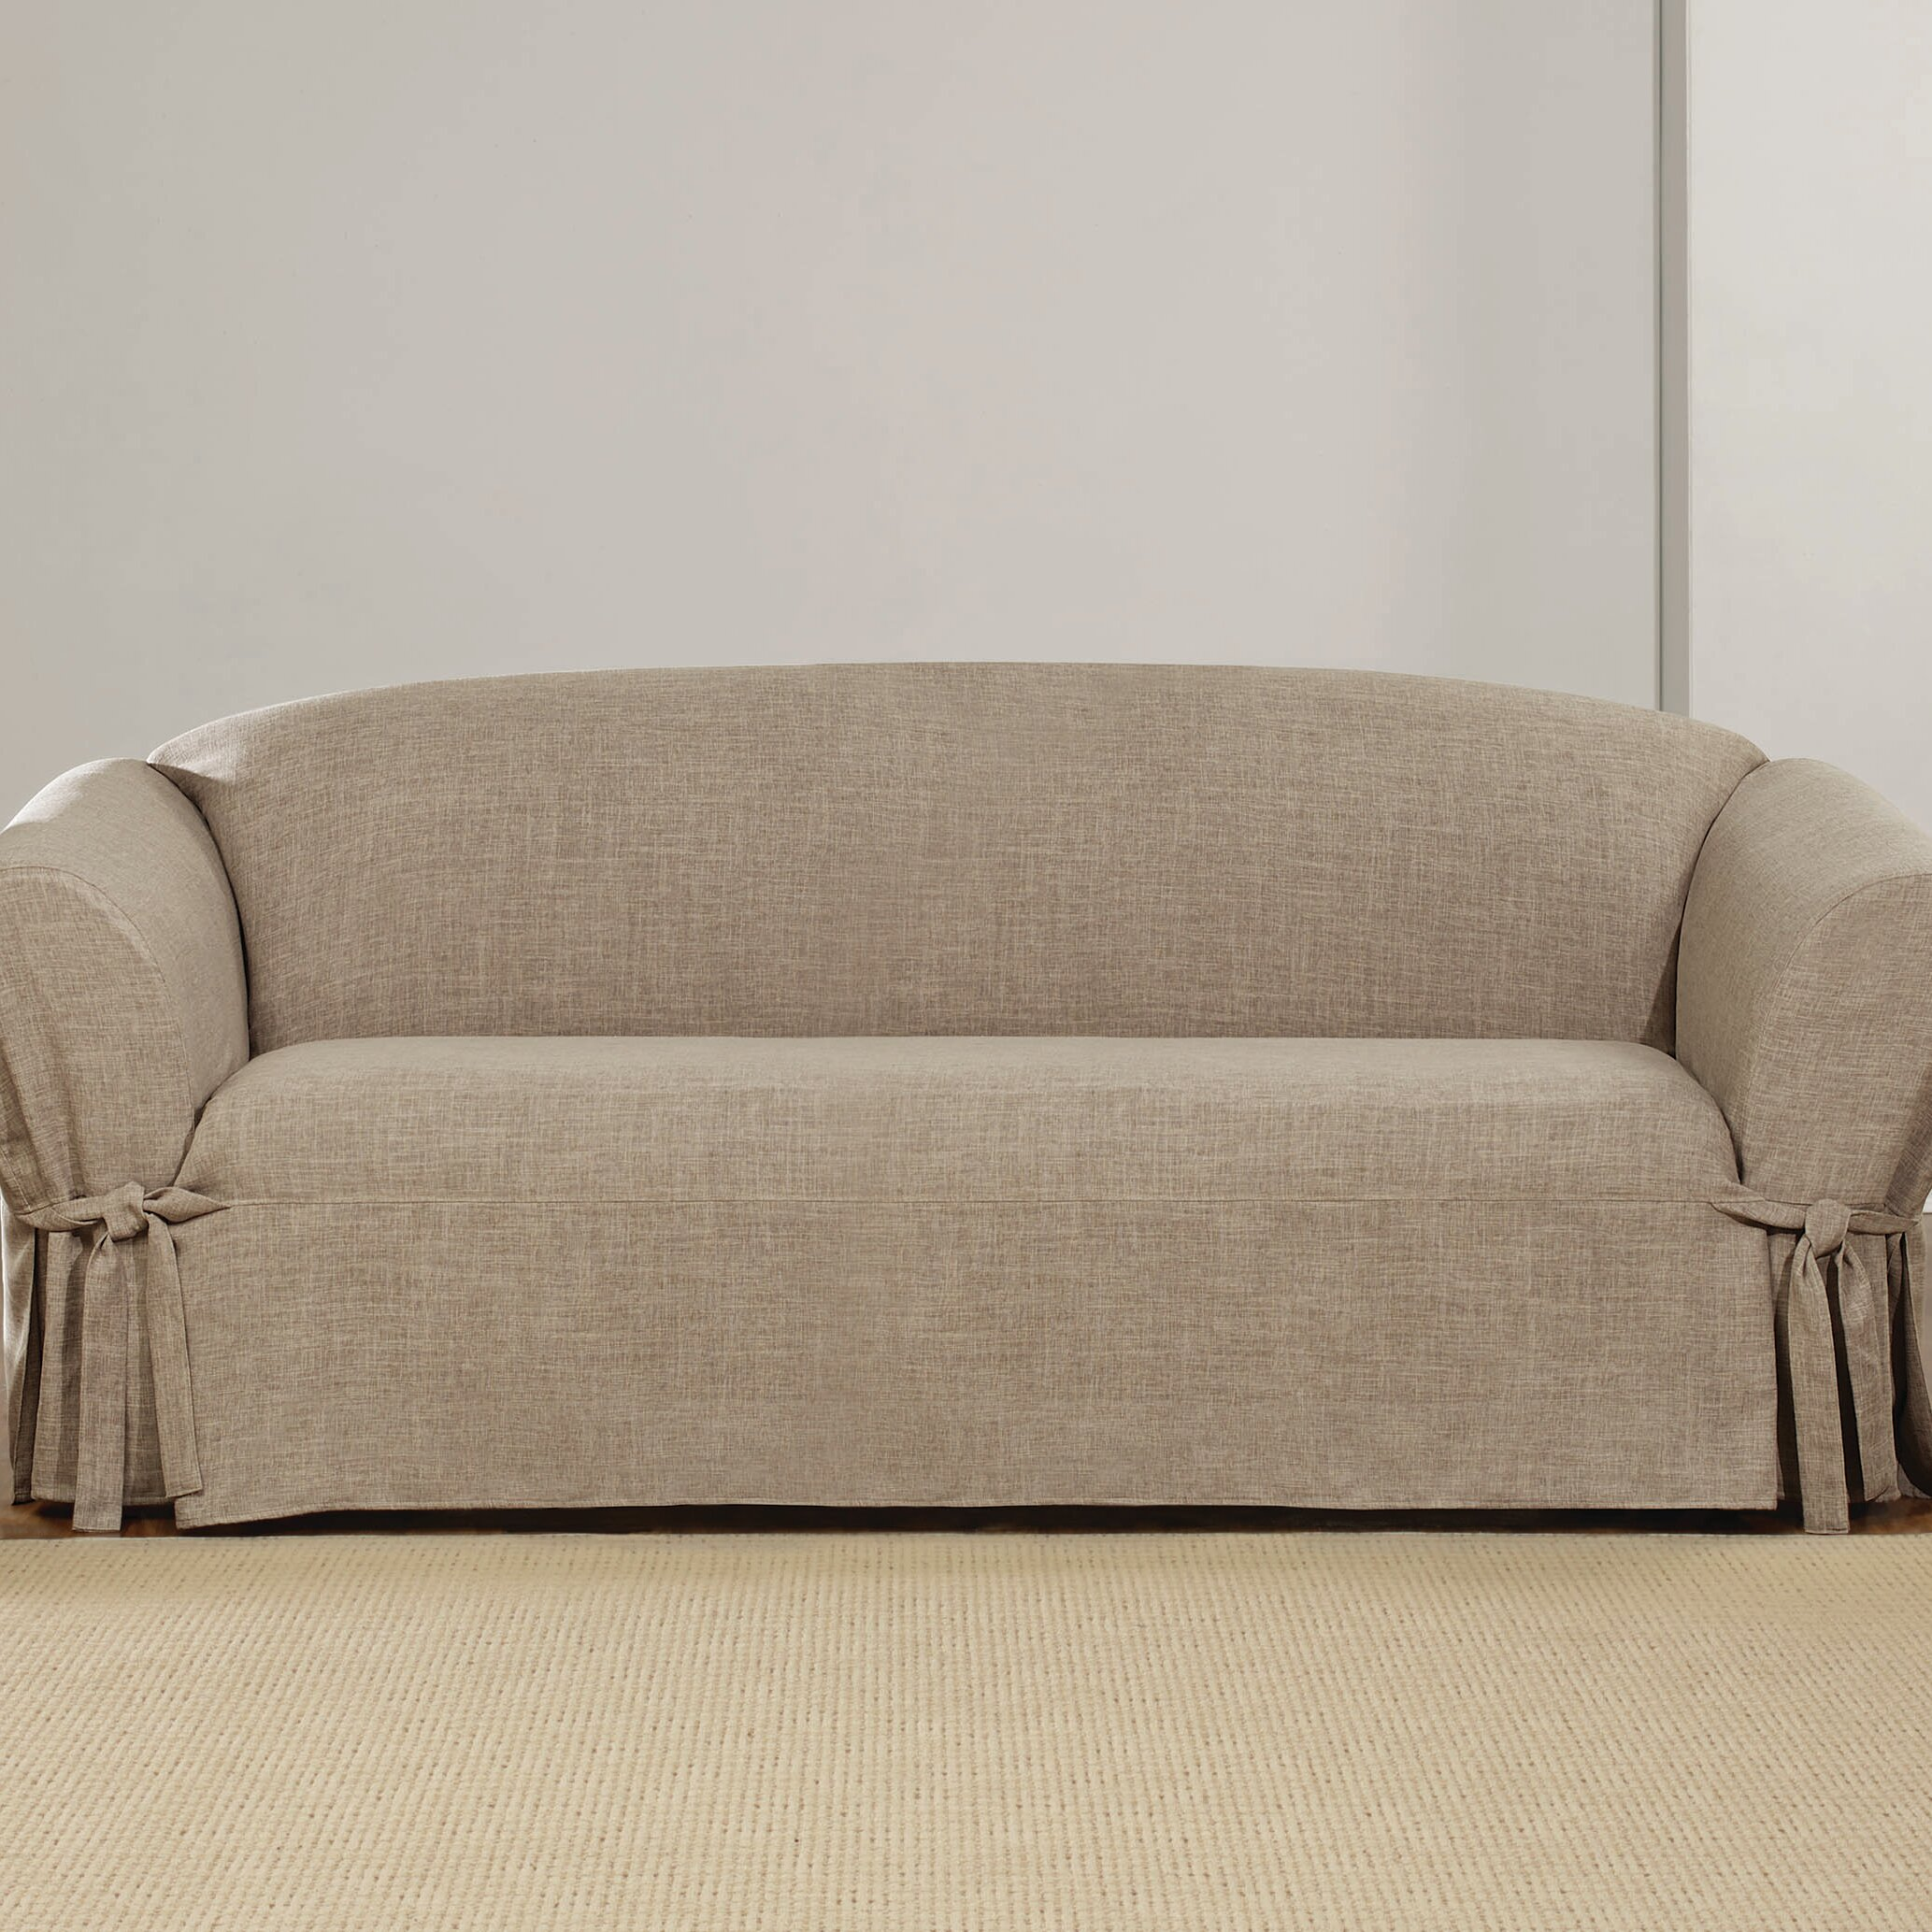 Sure Fit Textured Linen Polyester Sofa Slipcover Wayfair Ca